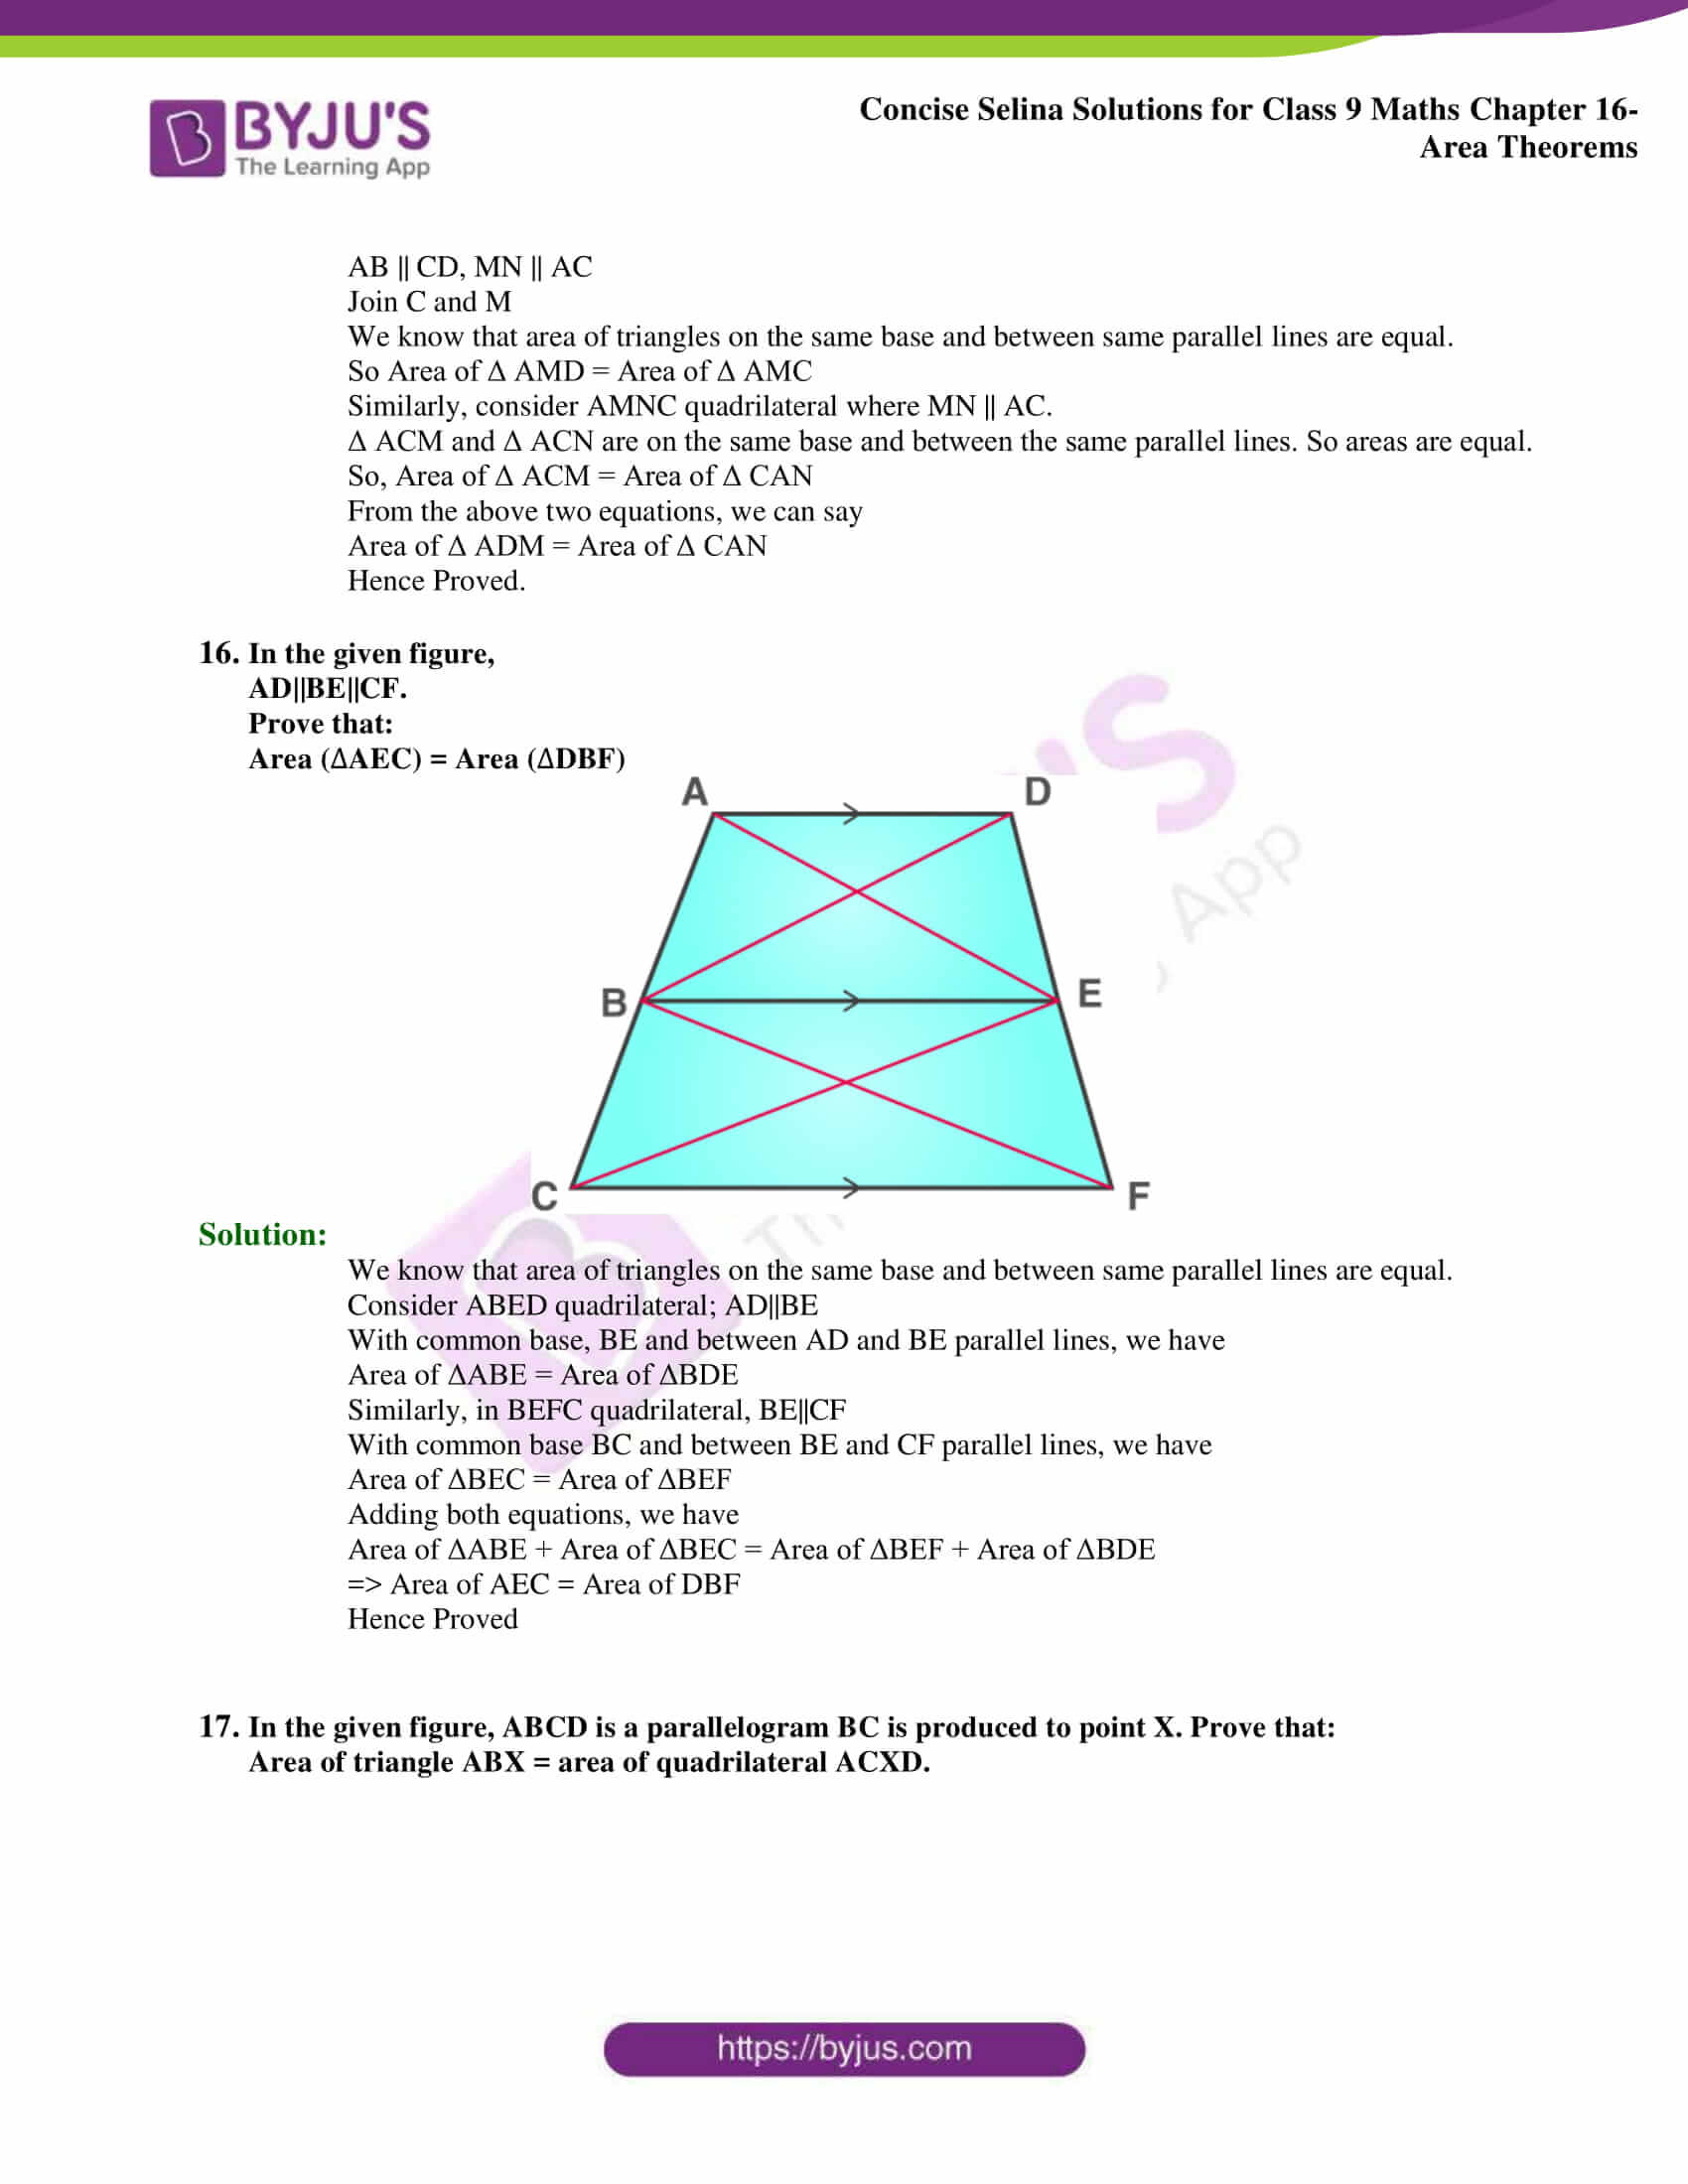 Concise Selina Solutions Class 9 Maths Chapter 16 Area Theorems part 13